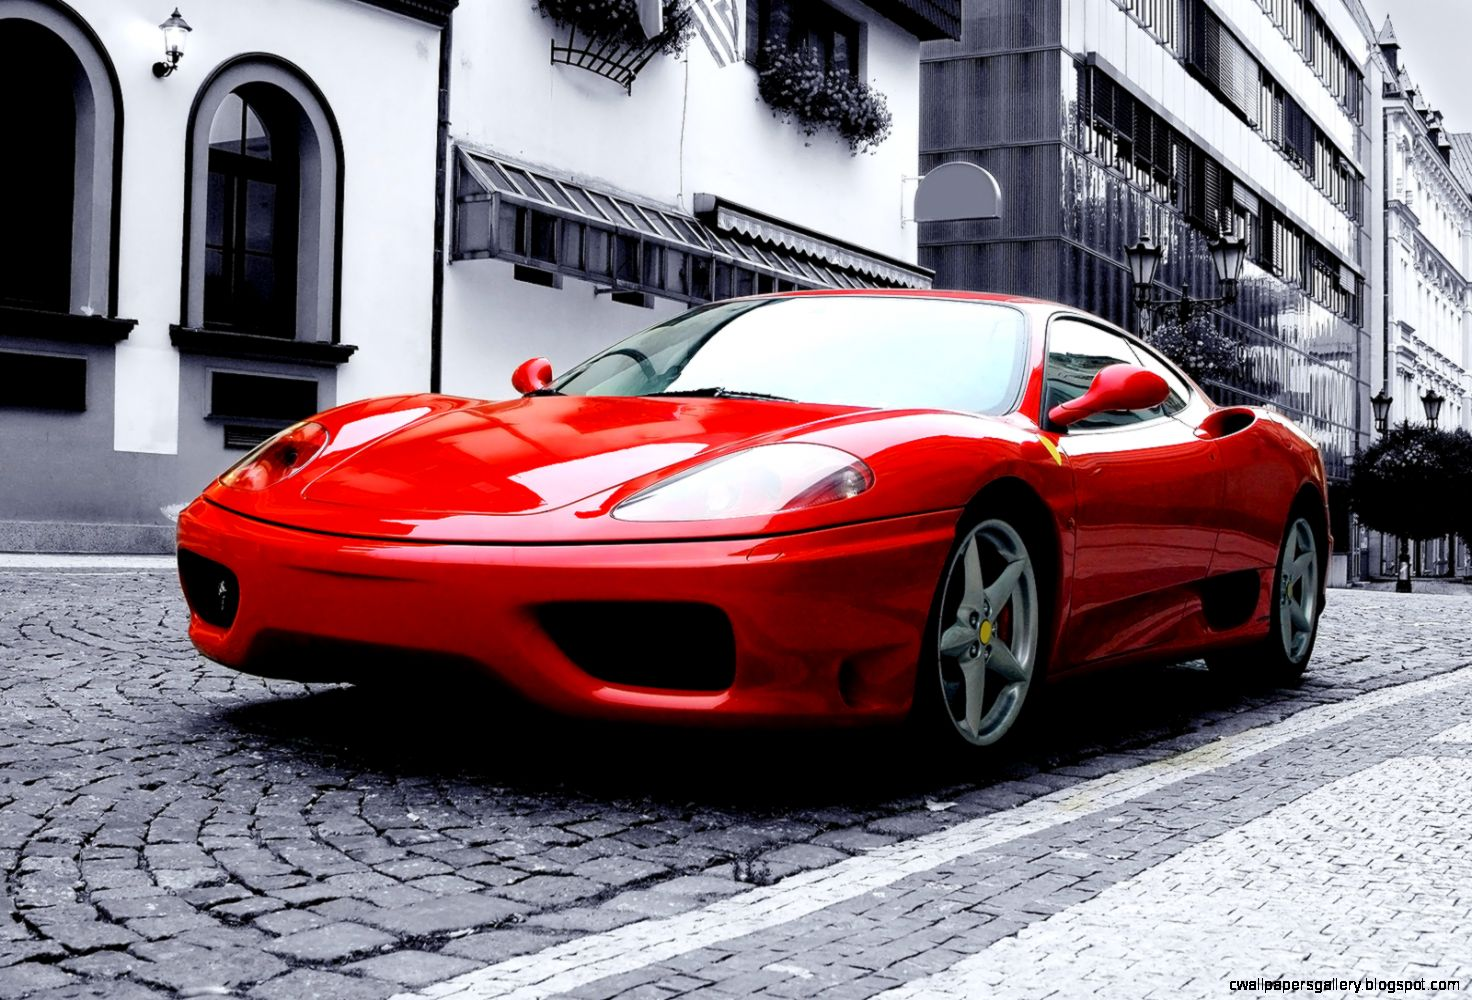 The Refined Life » Exotic and Luxury Car Rental